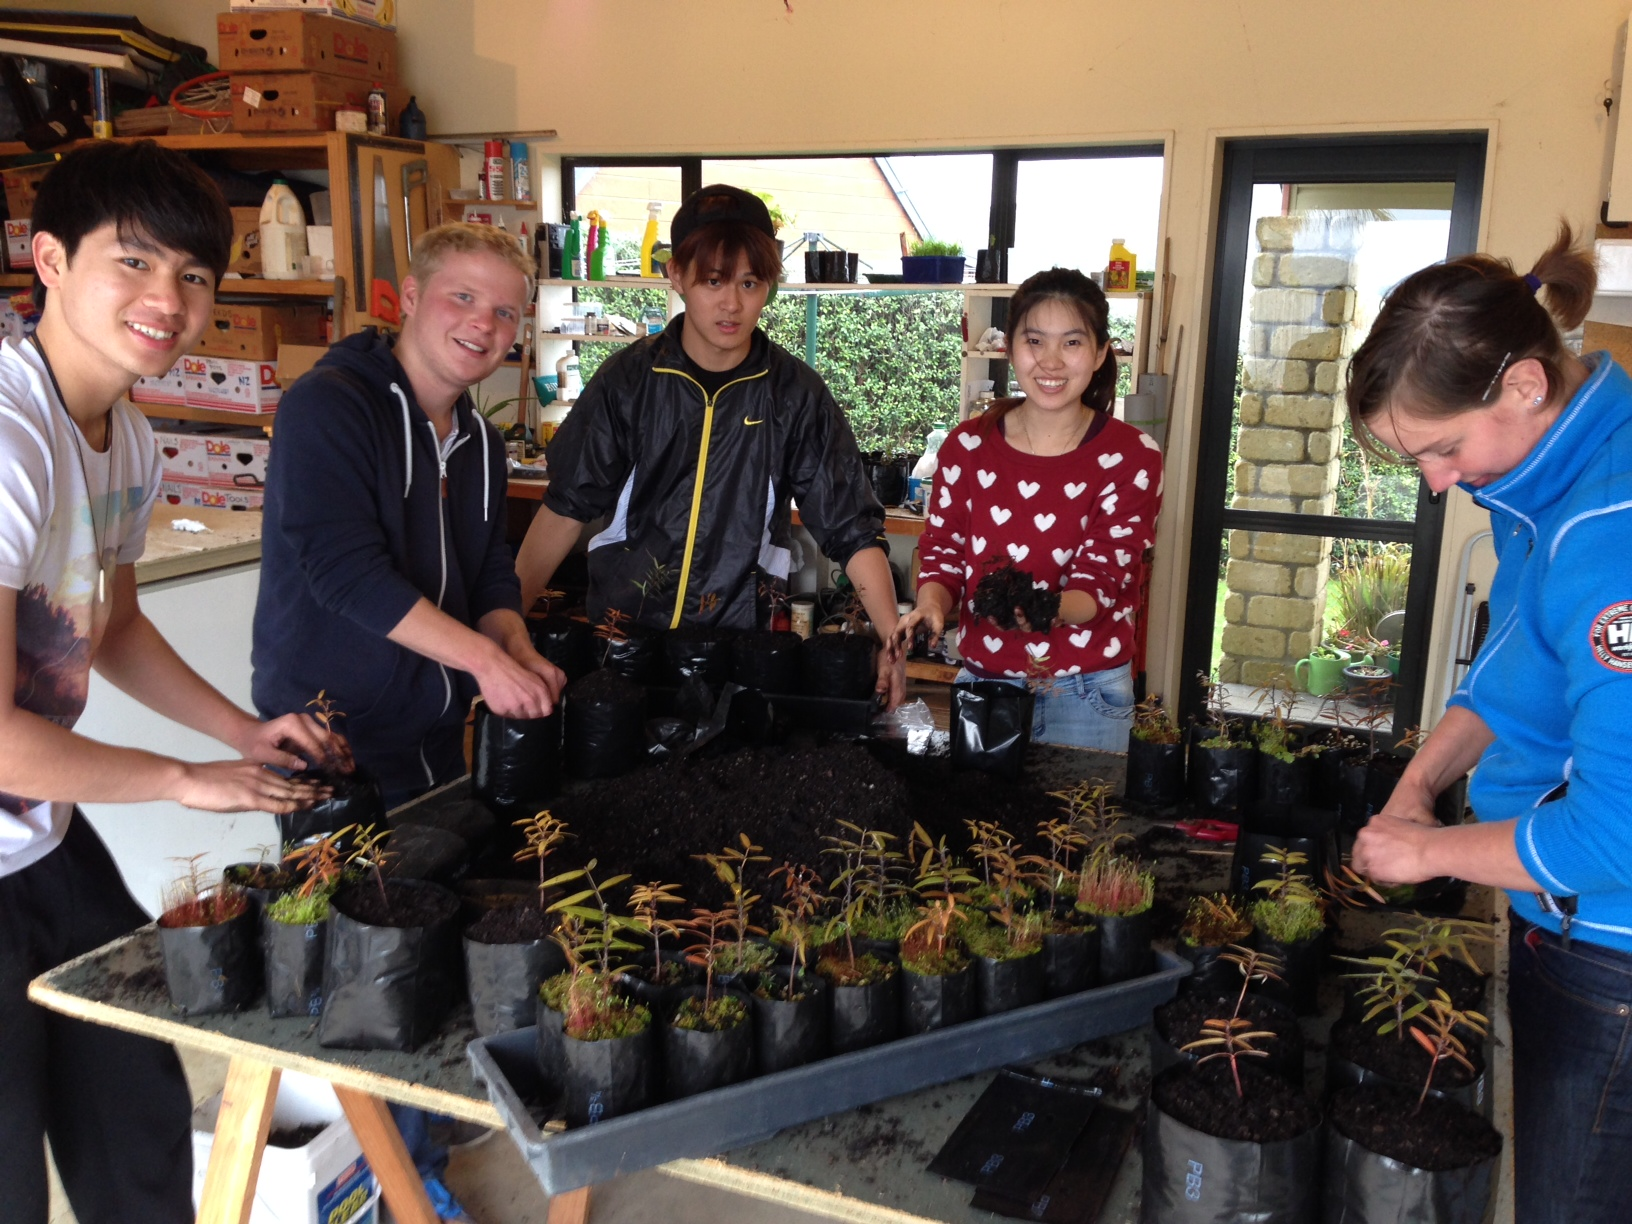 Pond, Roger, Kosiu, Pang and Sandra getting their hands dirty.